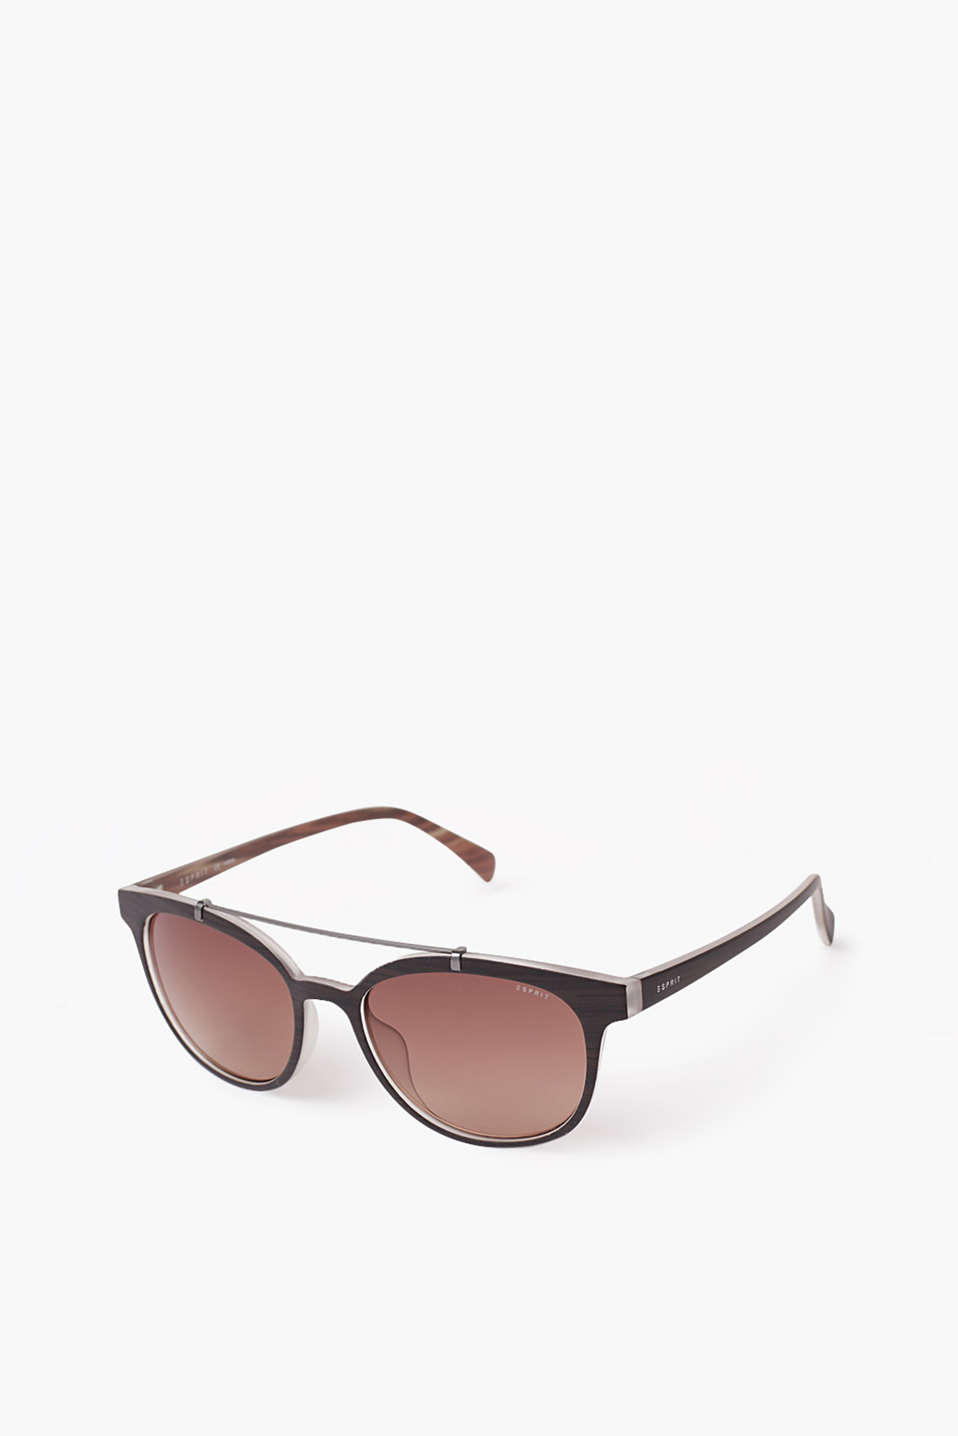 Plastic wood-effect sunglasses with a metal detail